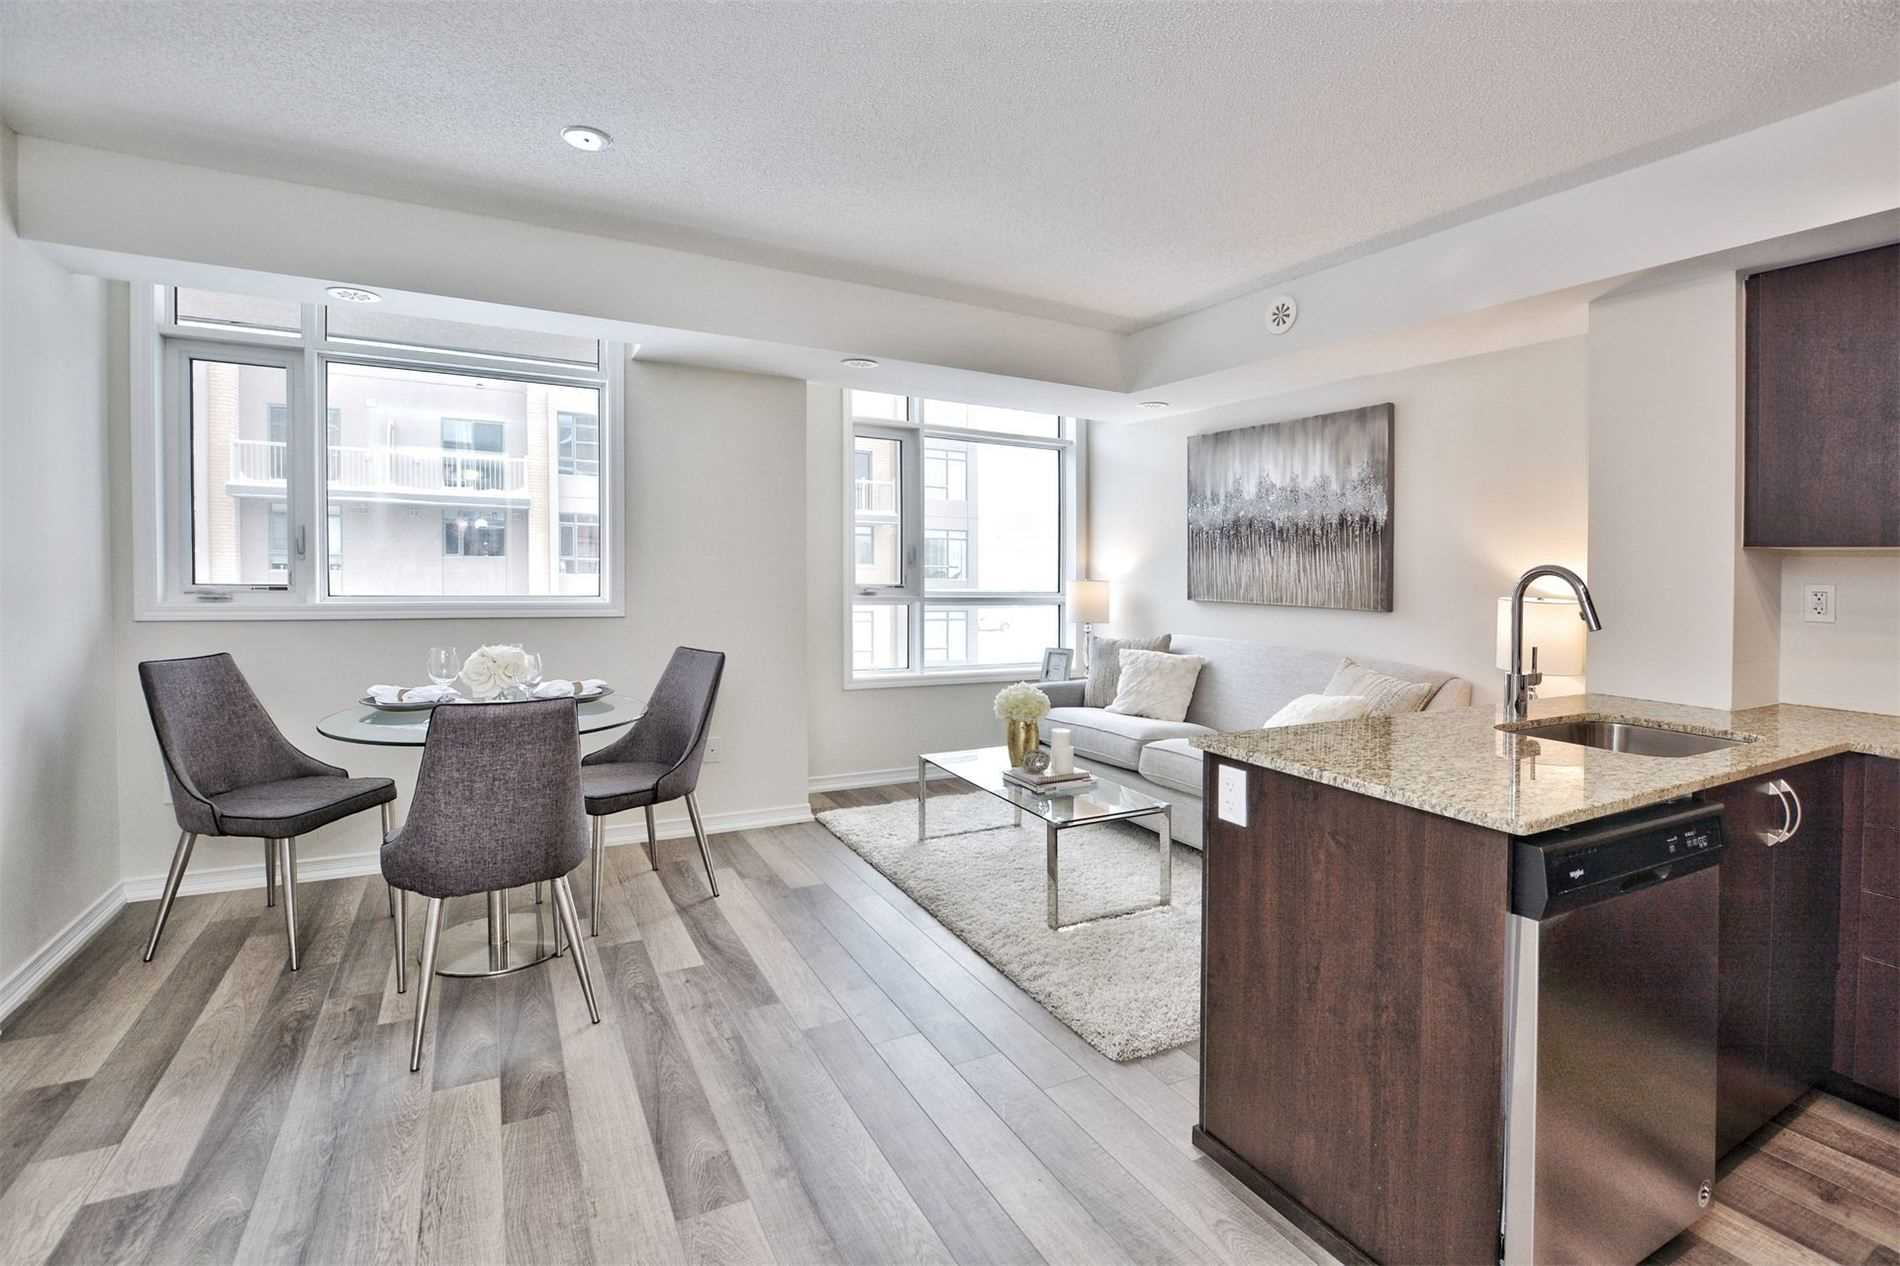 For Sale: 308 - 1070 Progress Avenue, Toronto, ON | 2 Bed, 2 Bath Townhouse for $479900.00. See 18 photos!